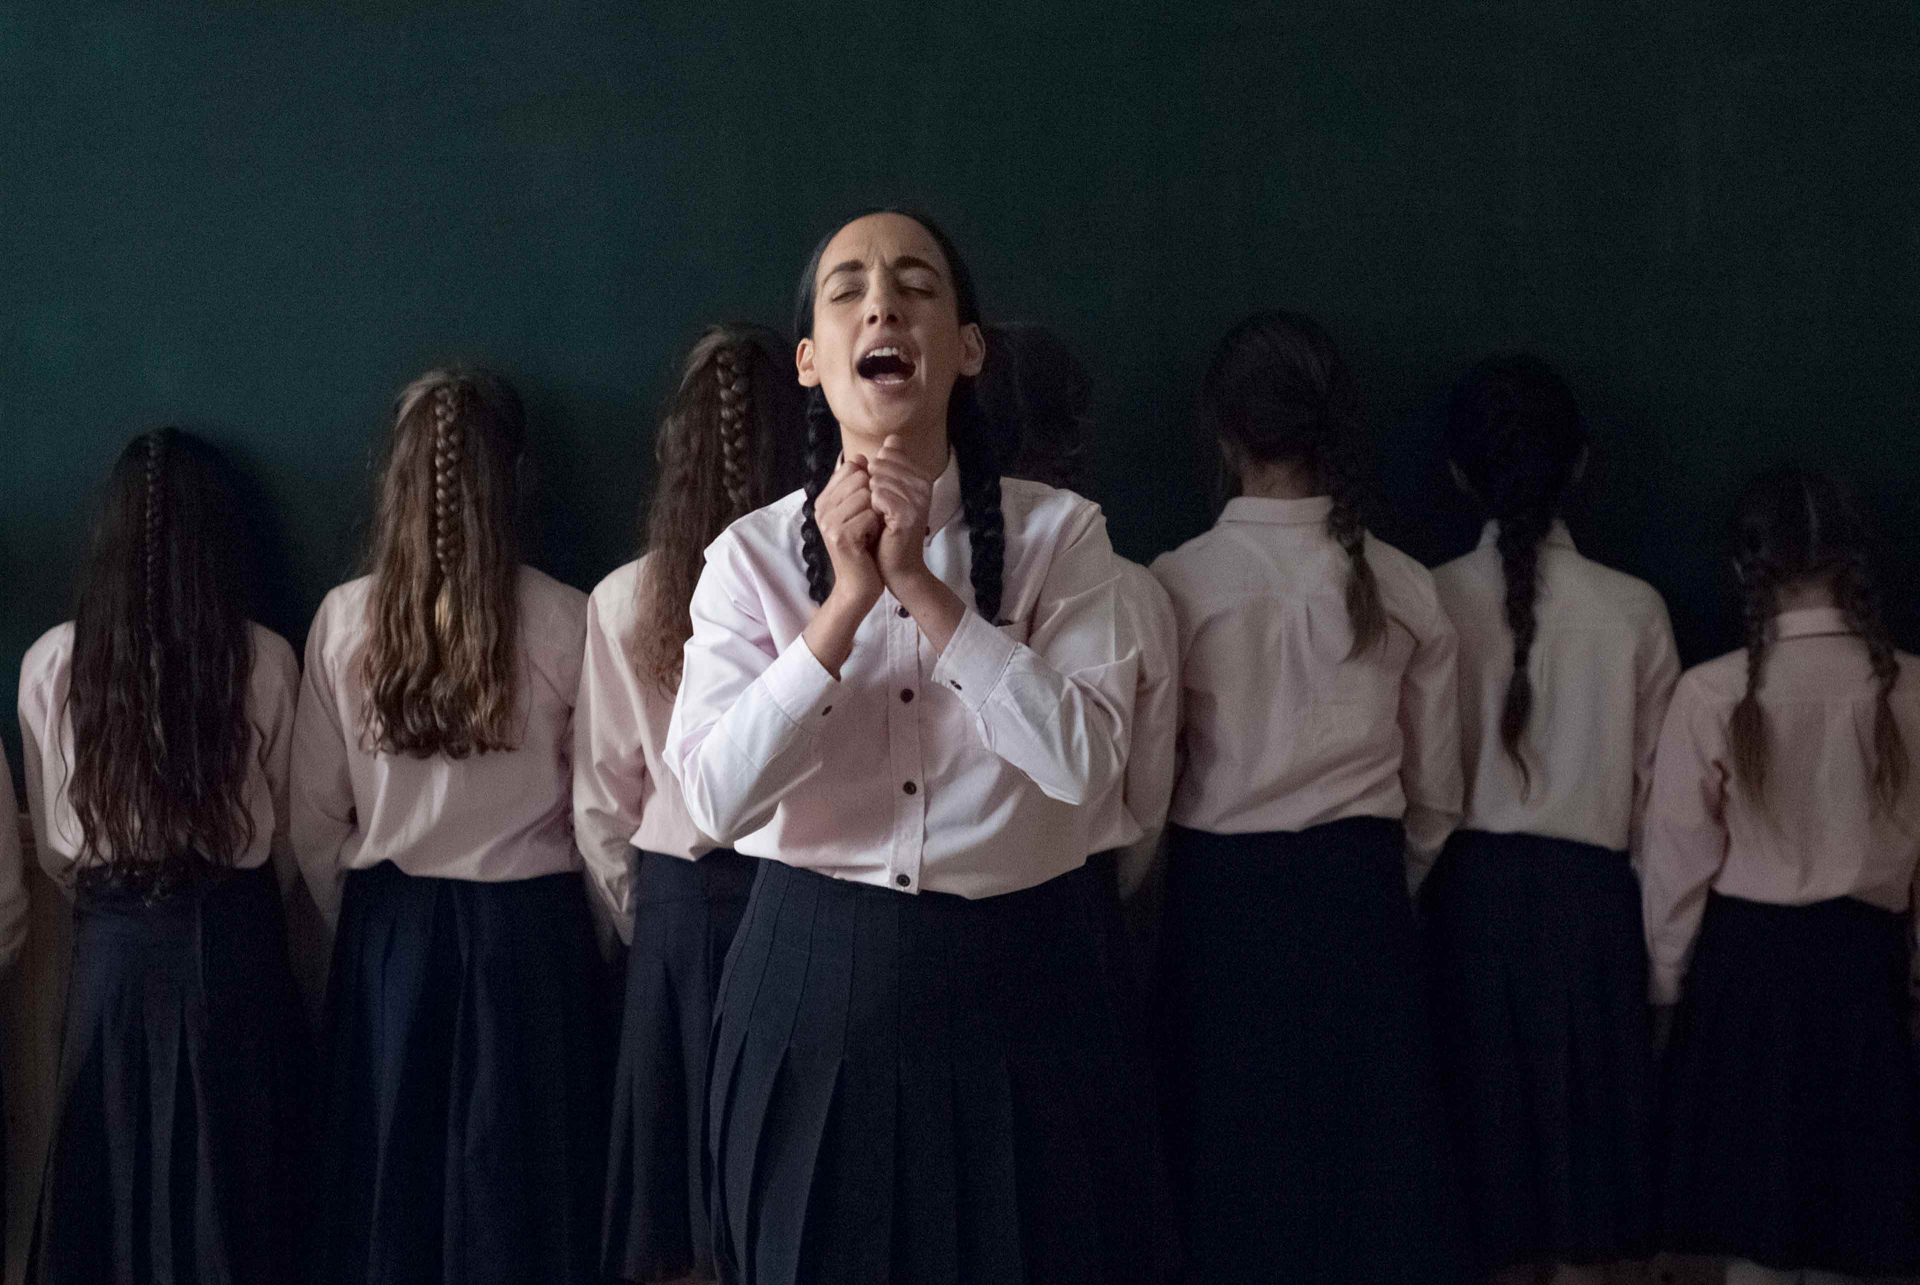 A group of girls in the clothes of Orthodox Jewish schoolgirls stands facing the wall in front of a blackboard. Victoria Hanna stands in front of it in the middle, singing with her eyes closed and her hands in front of her chest.